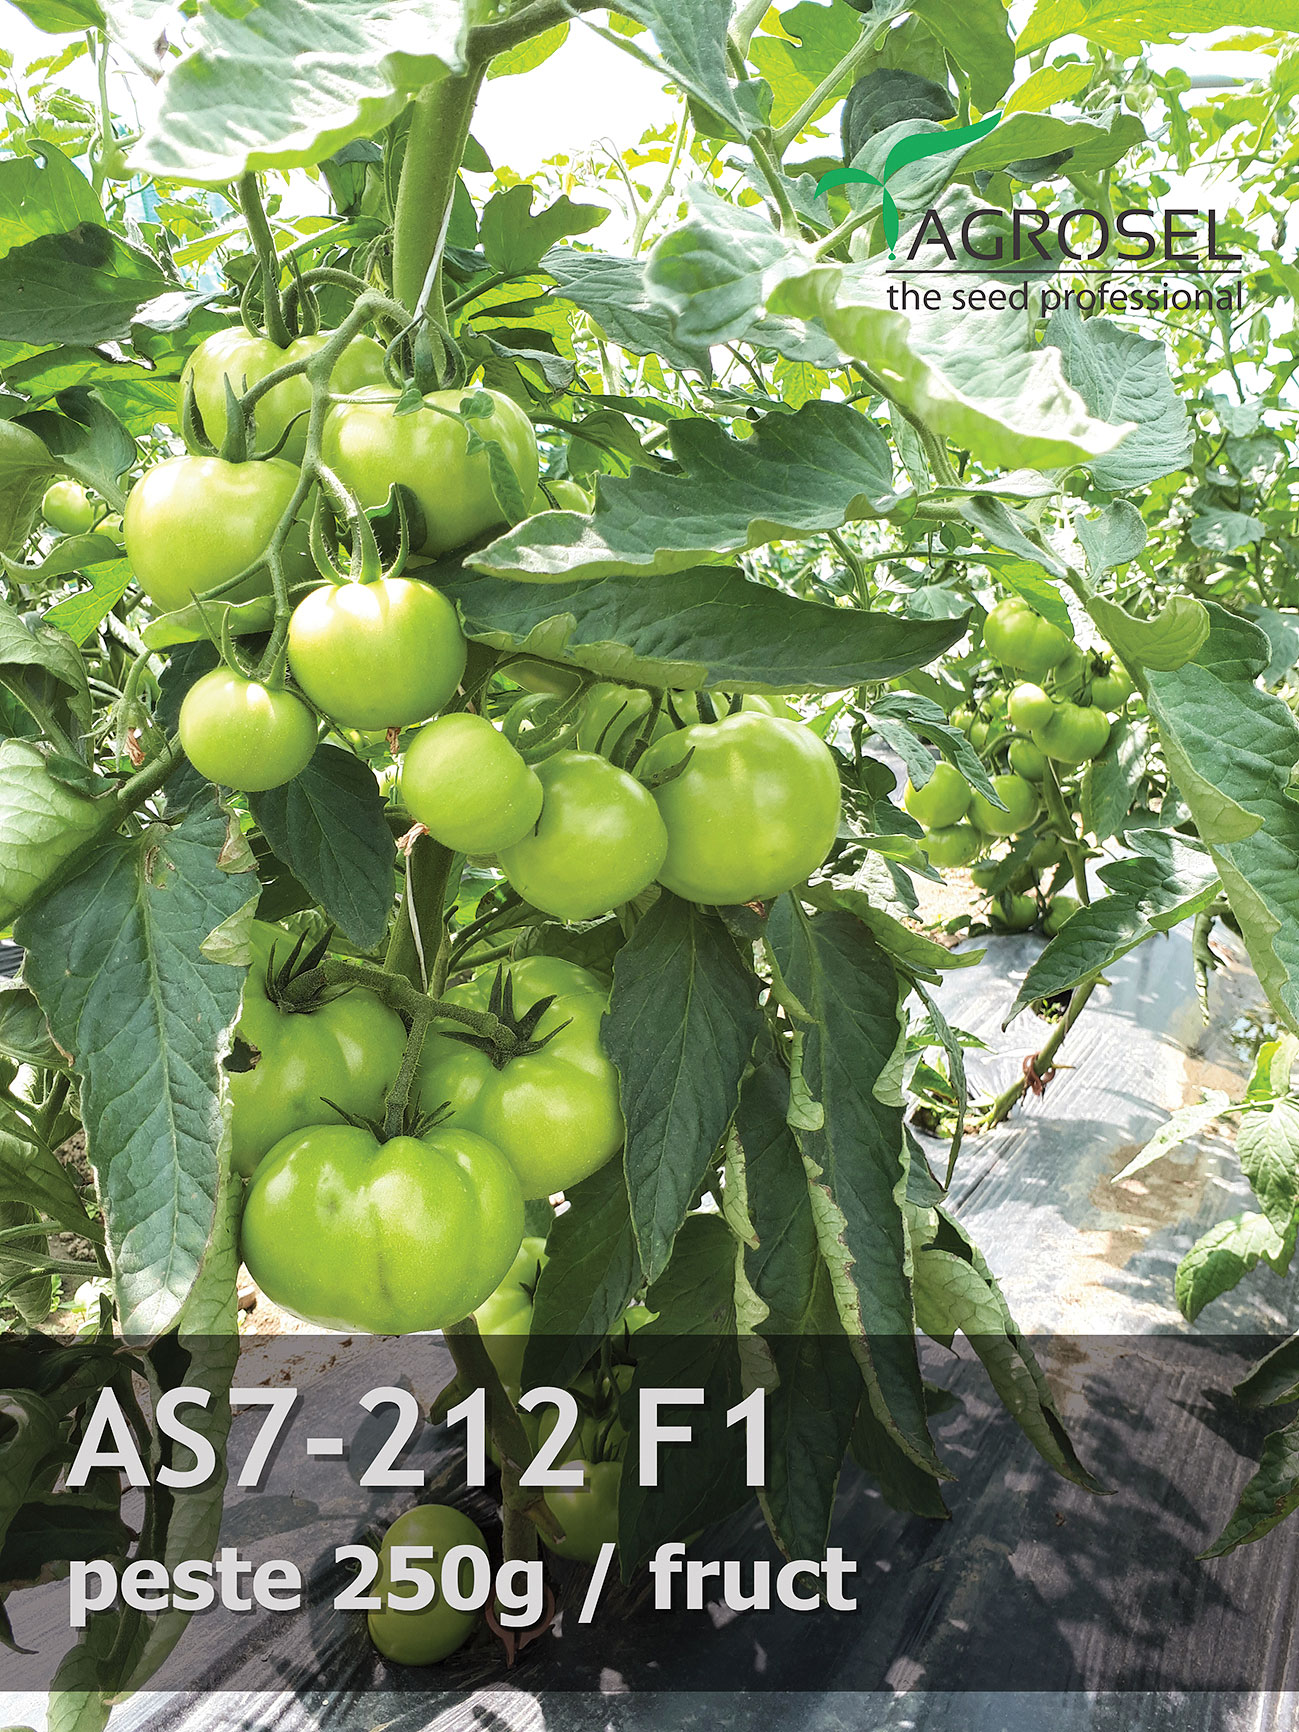 hibrizi tomate AS7 212F1